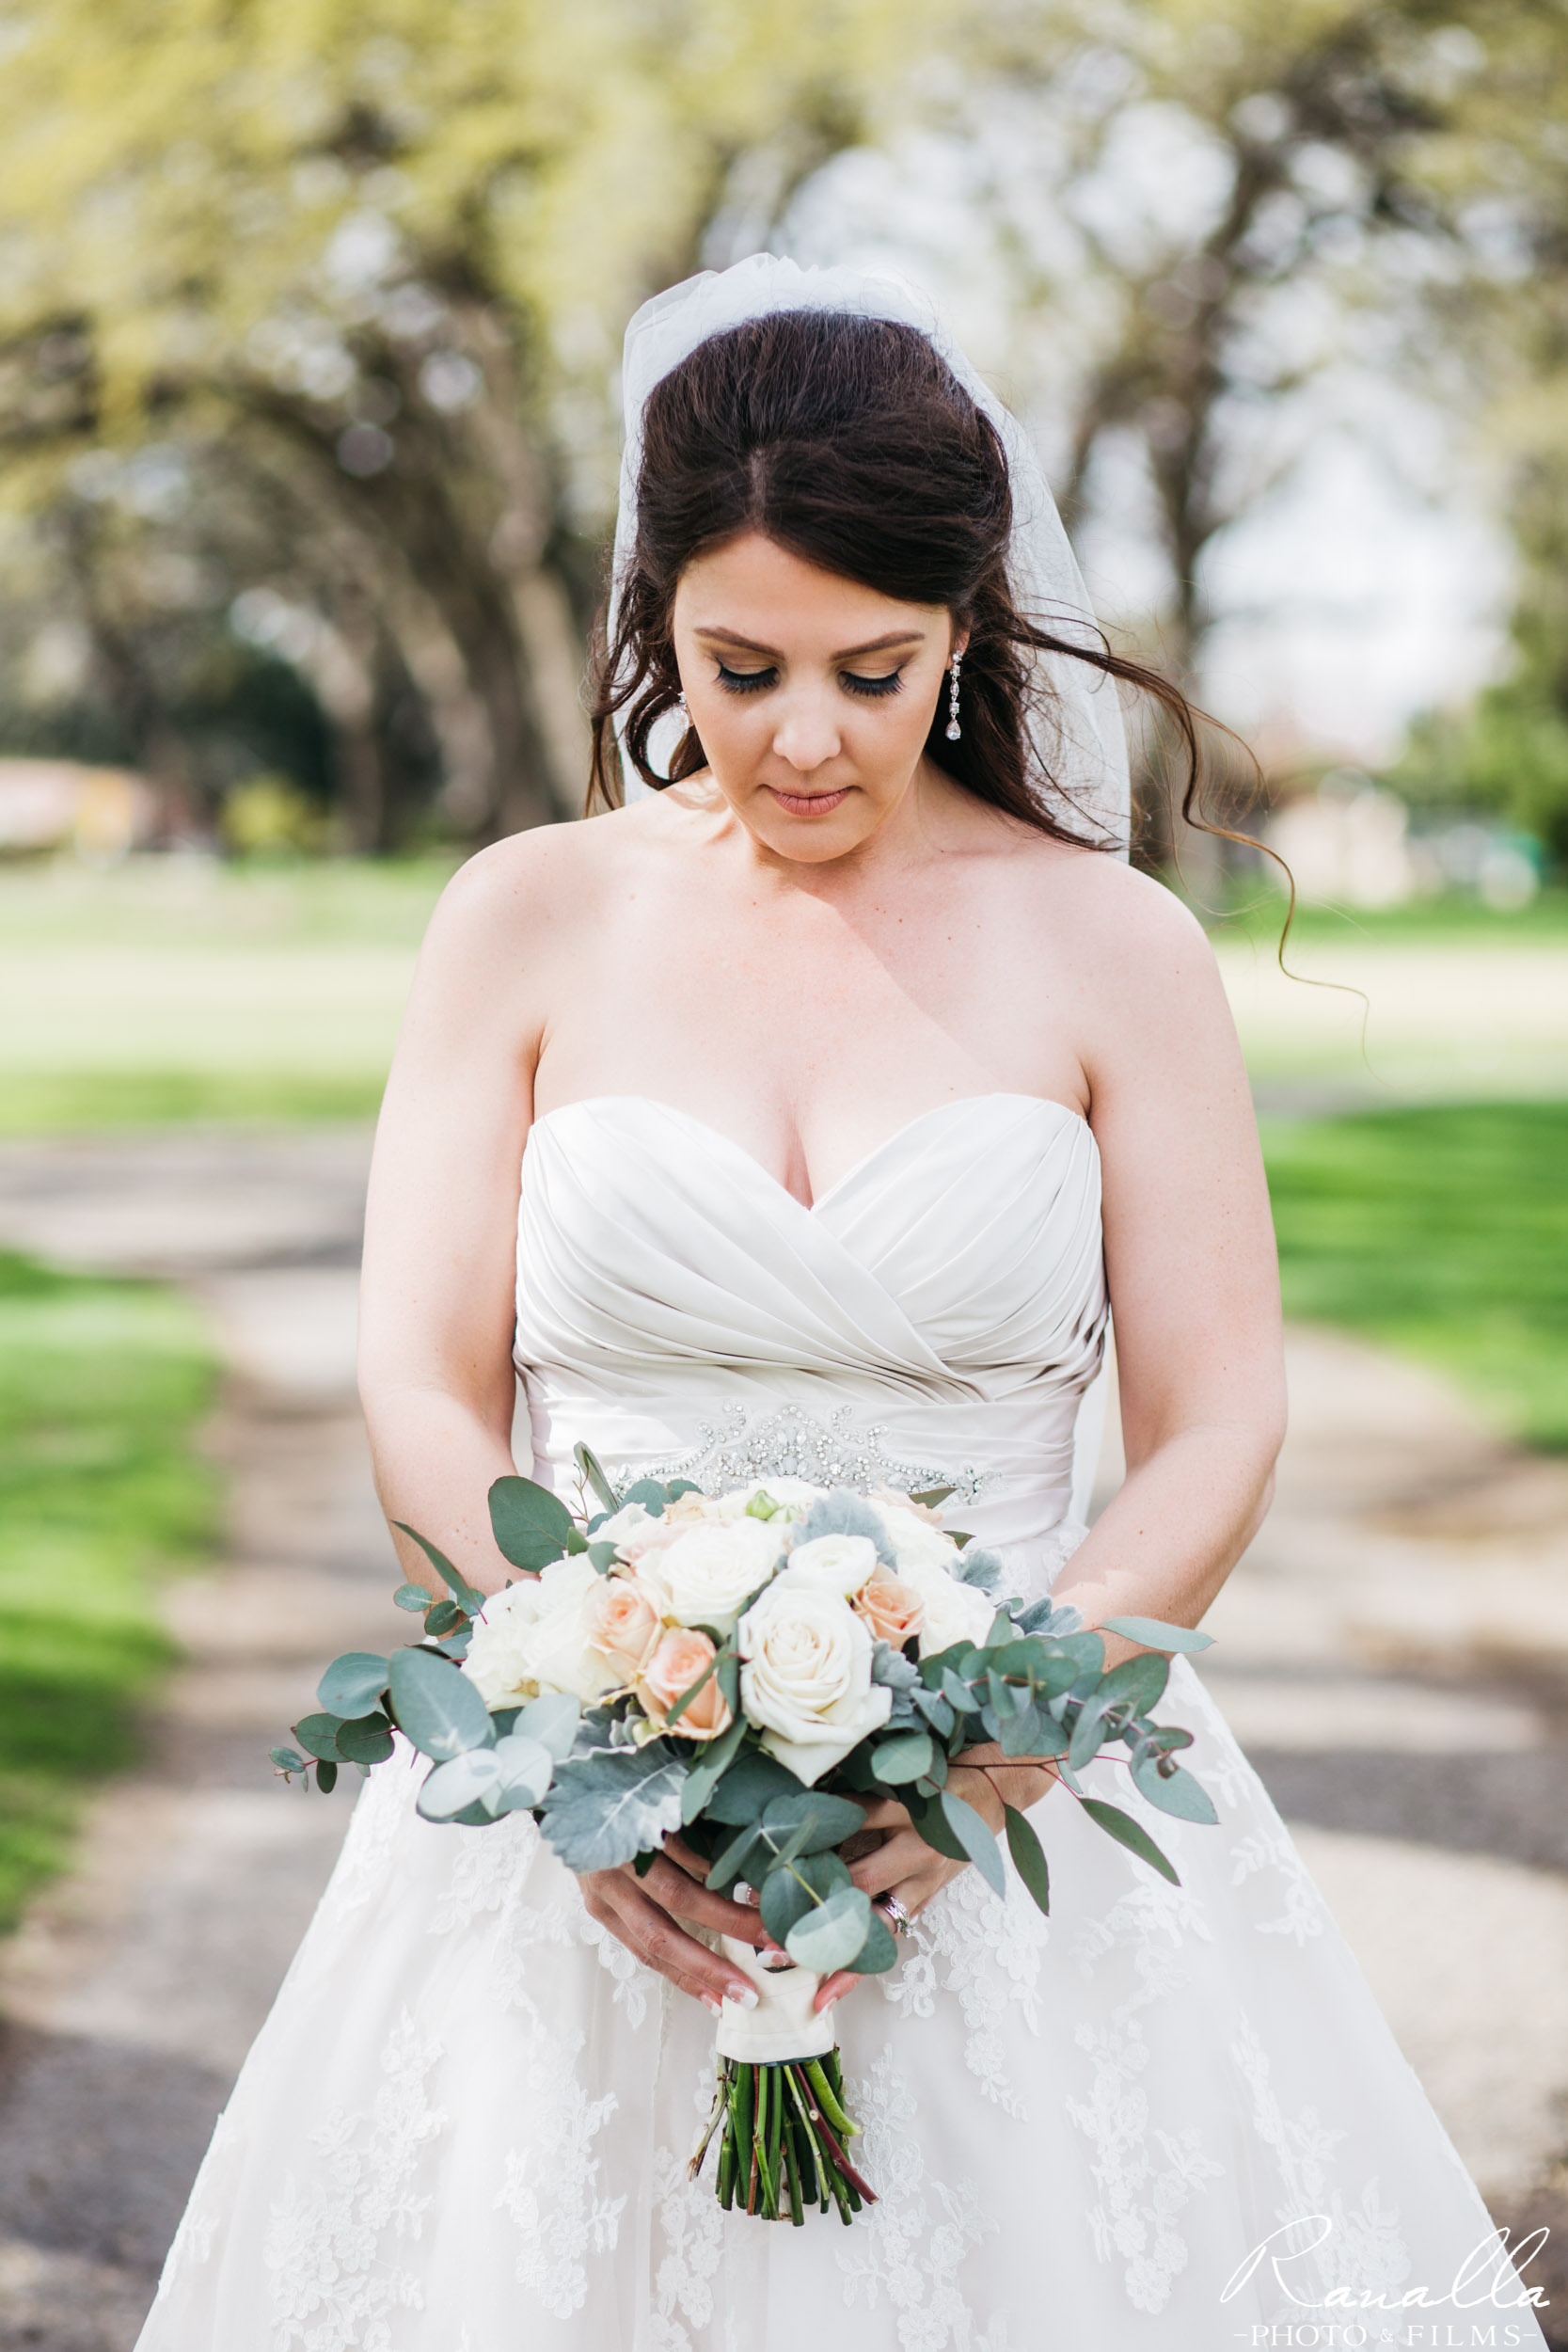 Chico Wedding Photography- Bridal Bouquet- Strapless Wedding Dress- Butte Creek Country Club- Simply Elegant Bridal- Lavender Blue- Ranalla Photo & Films